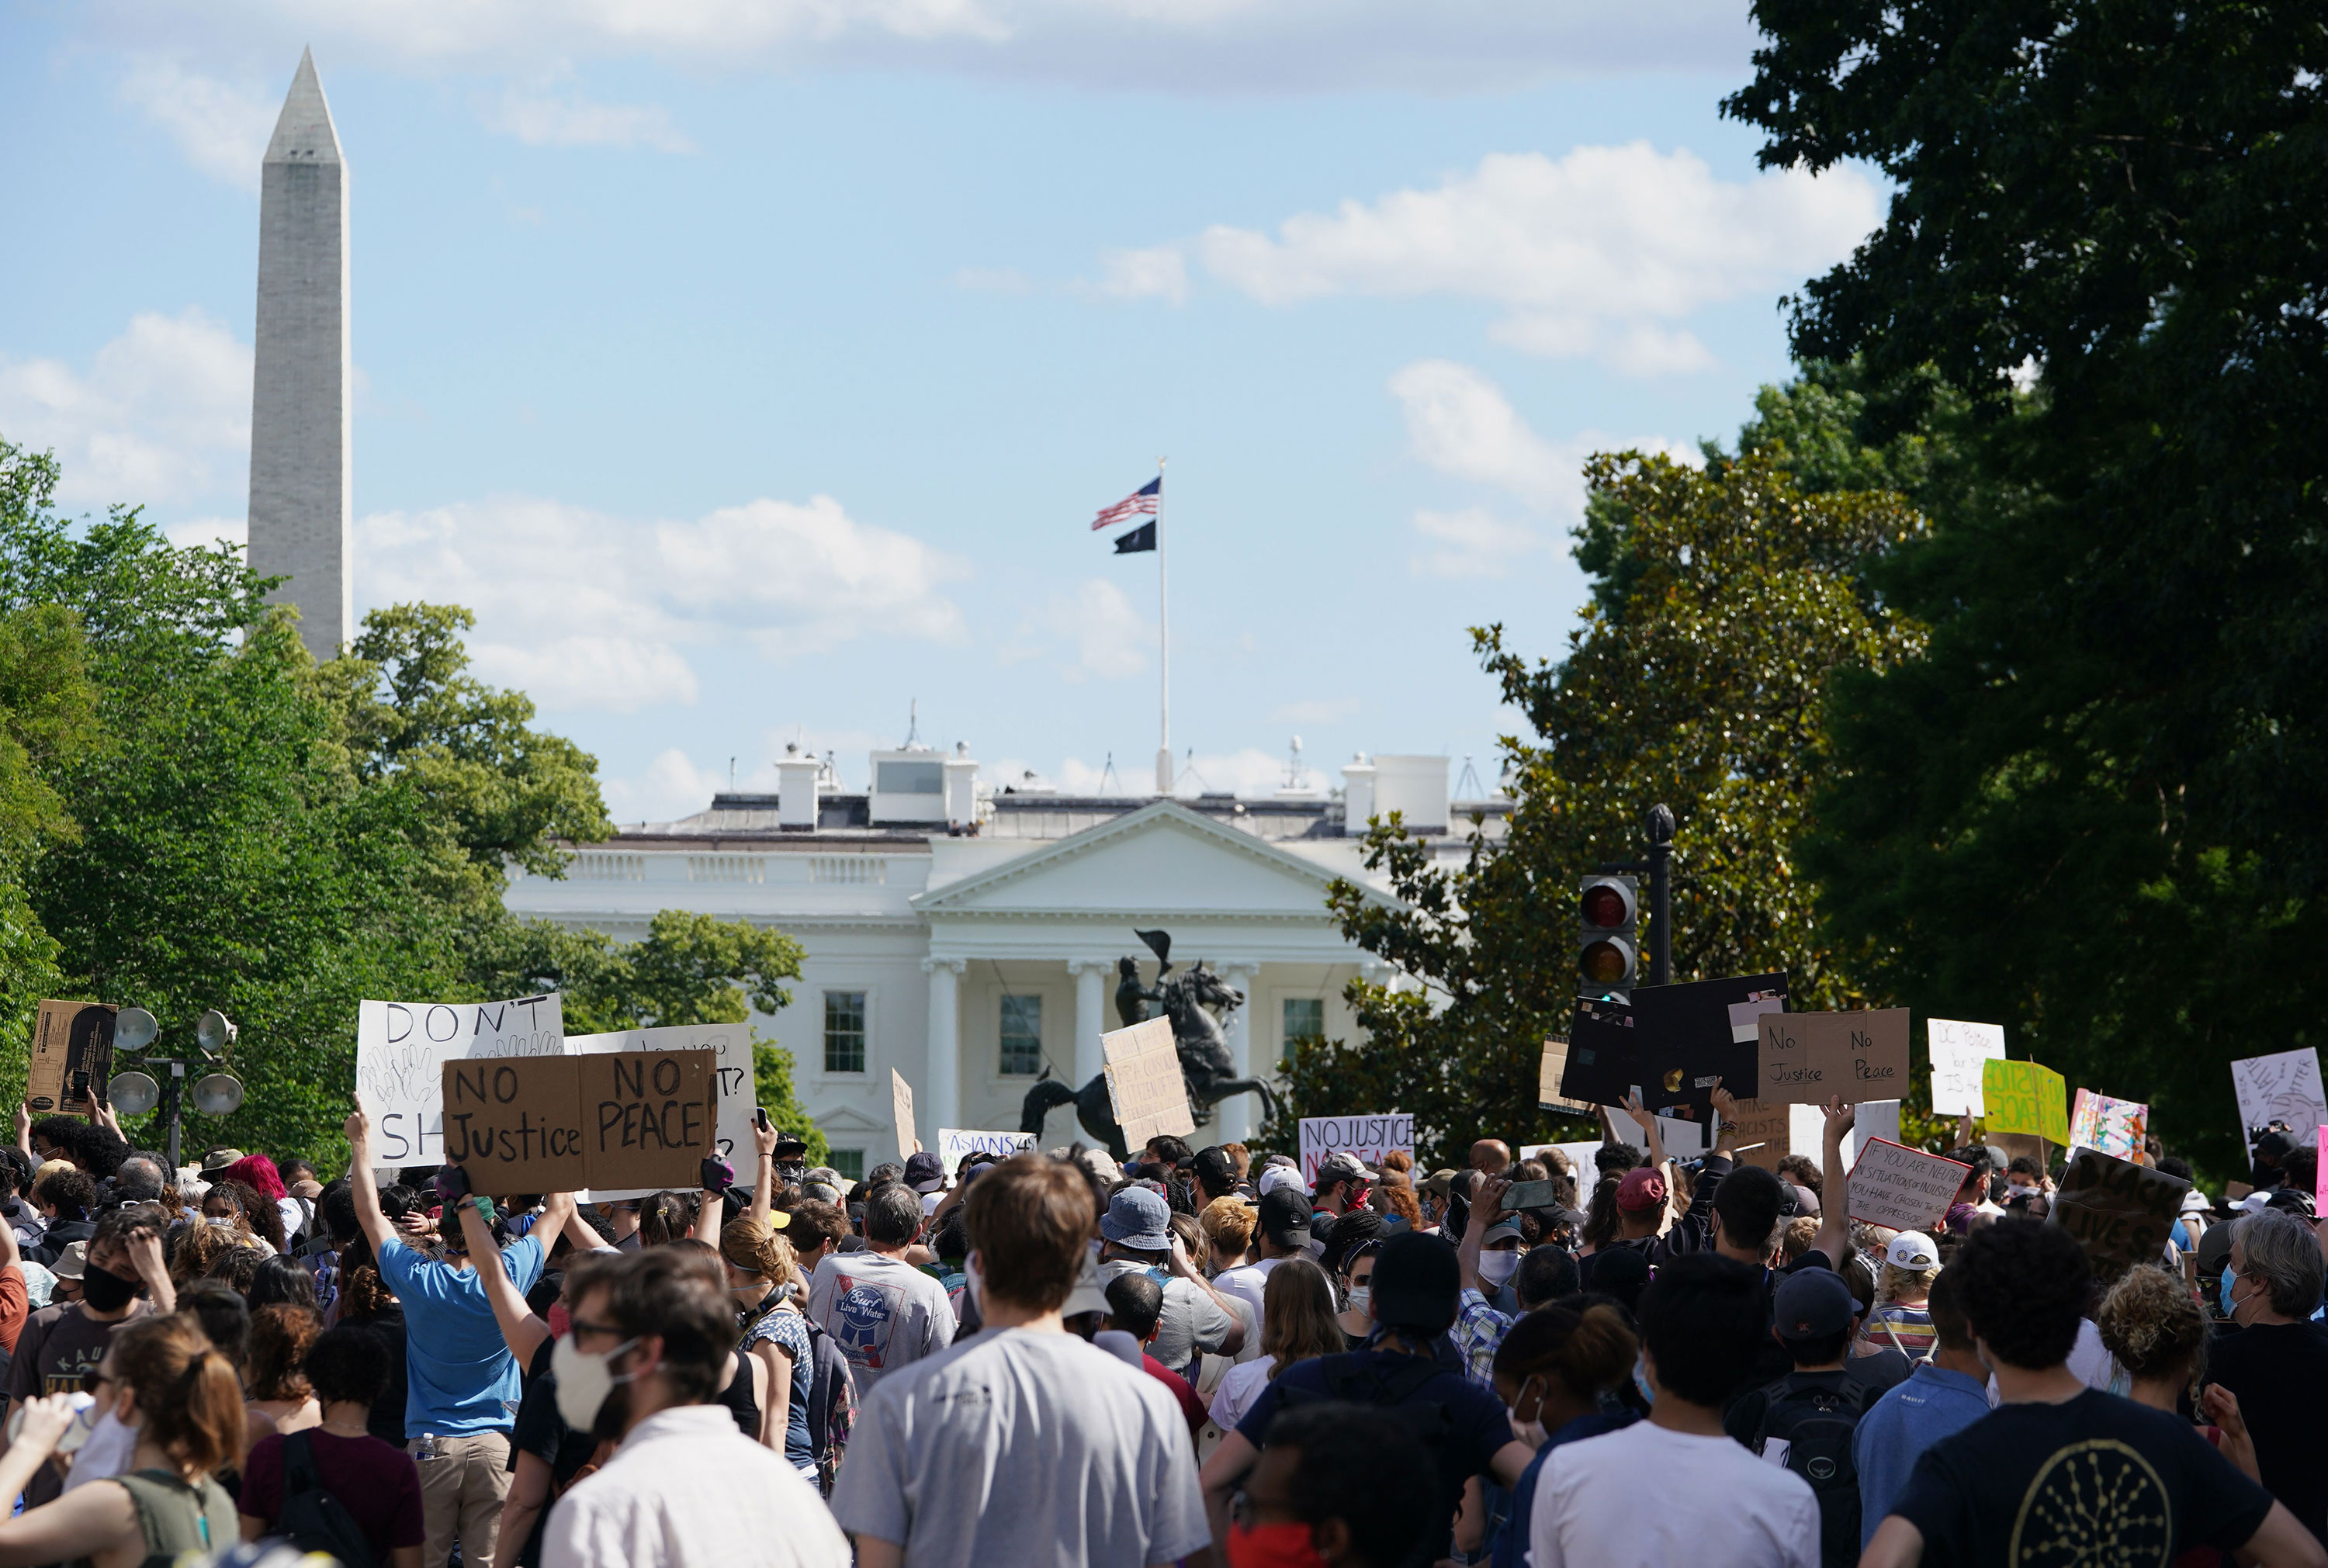 Demonstrators gather near the White House on May 31 in Washington.